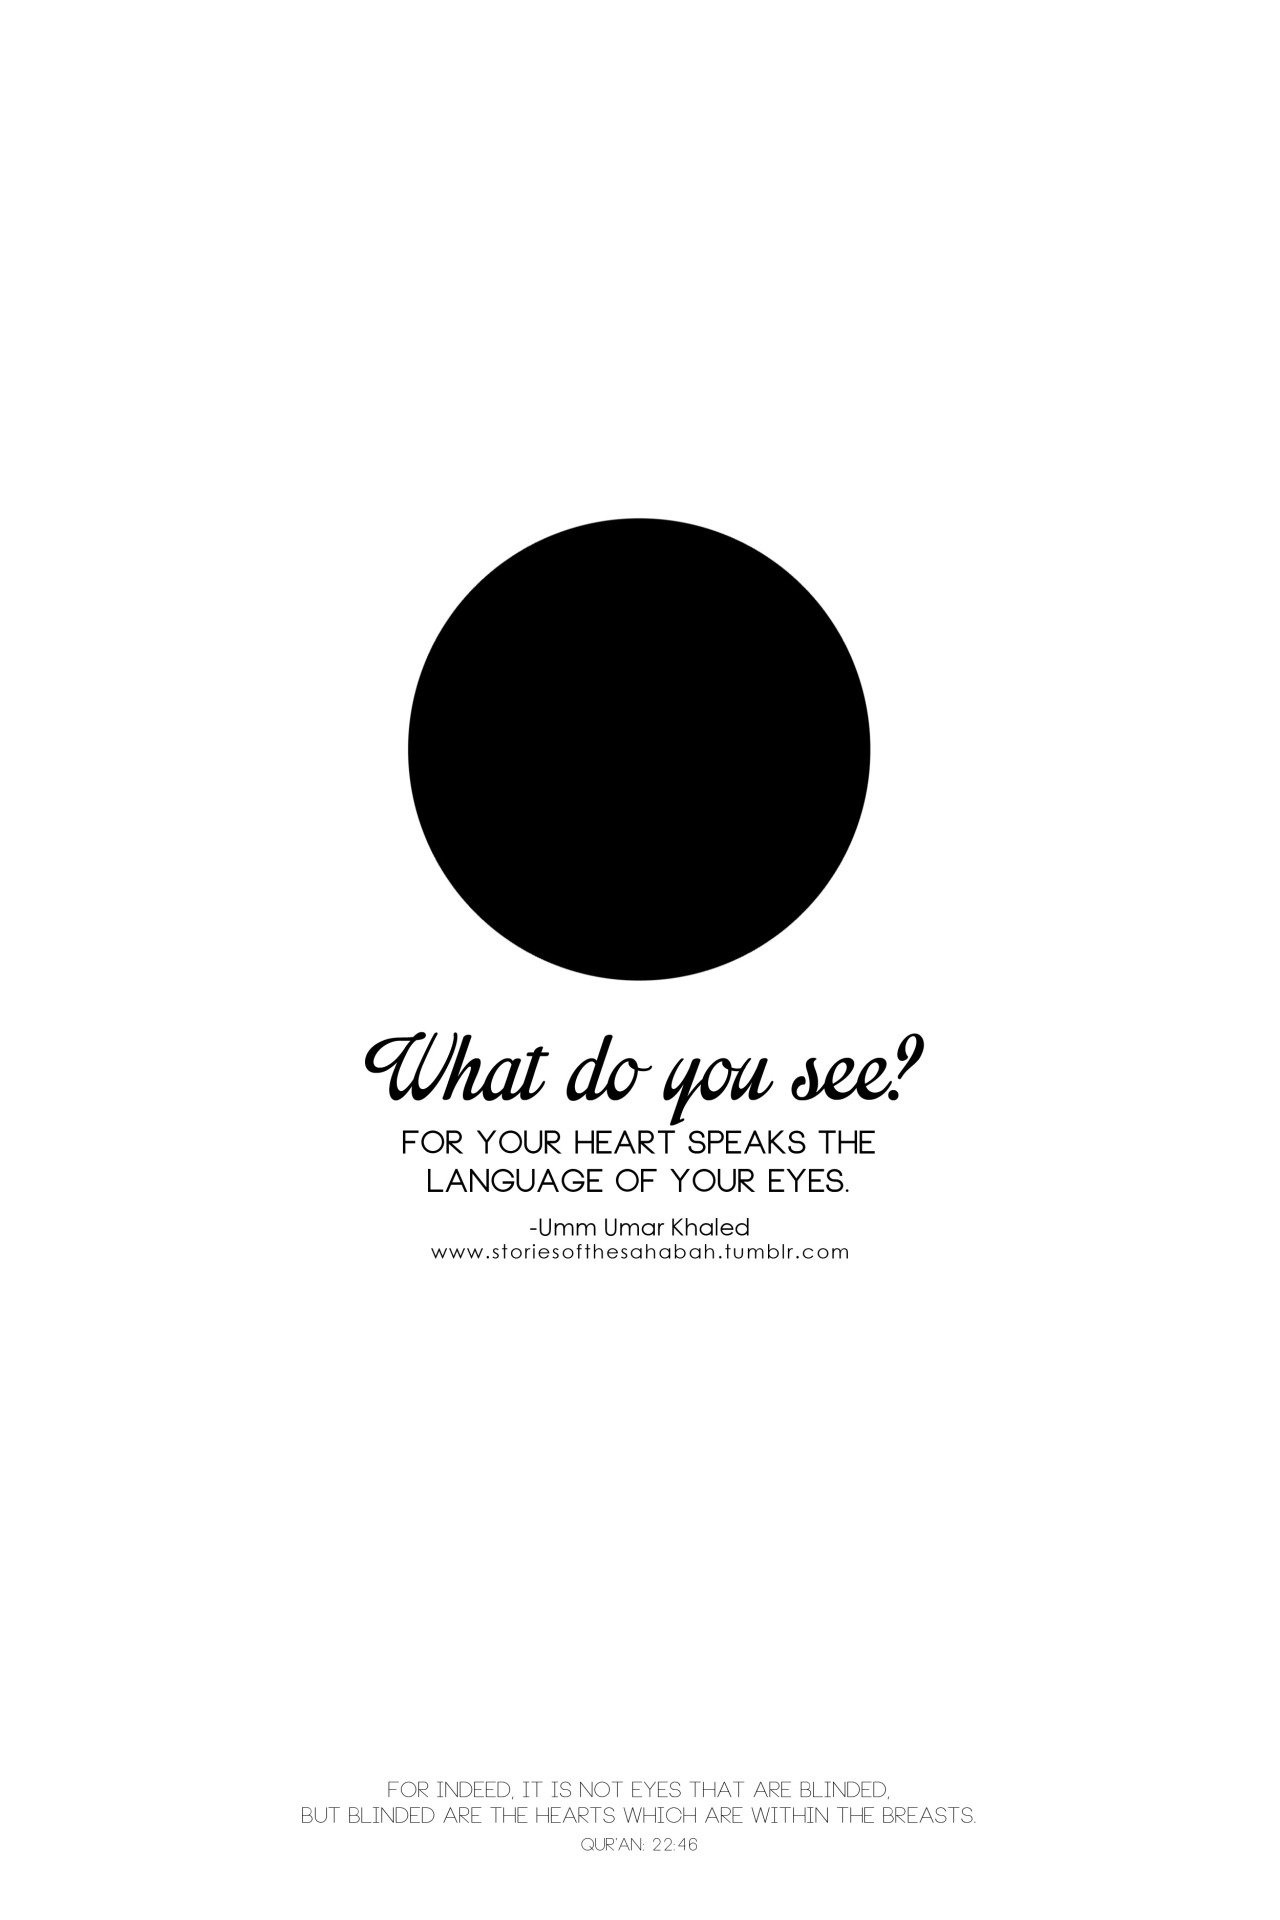 So what do you see? Look properly on the picture above